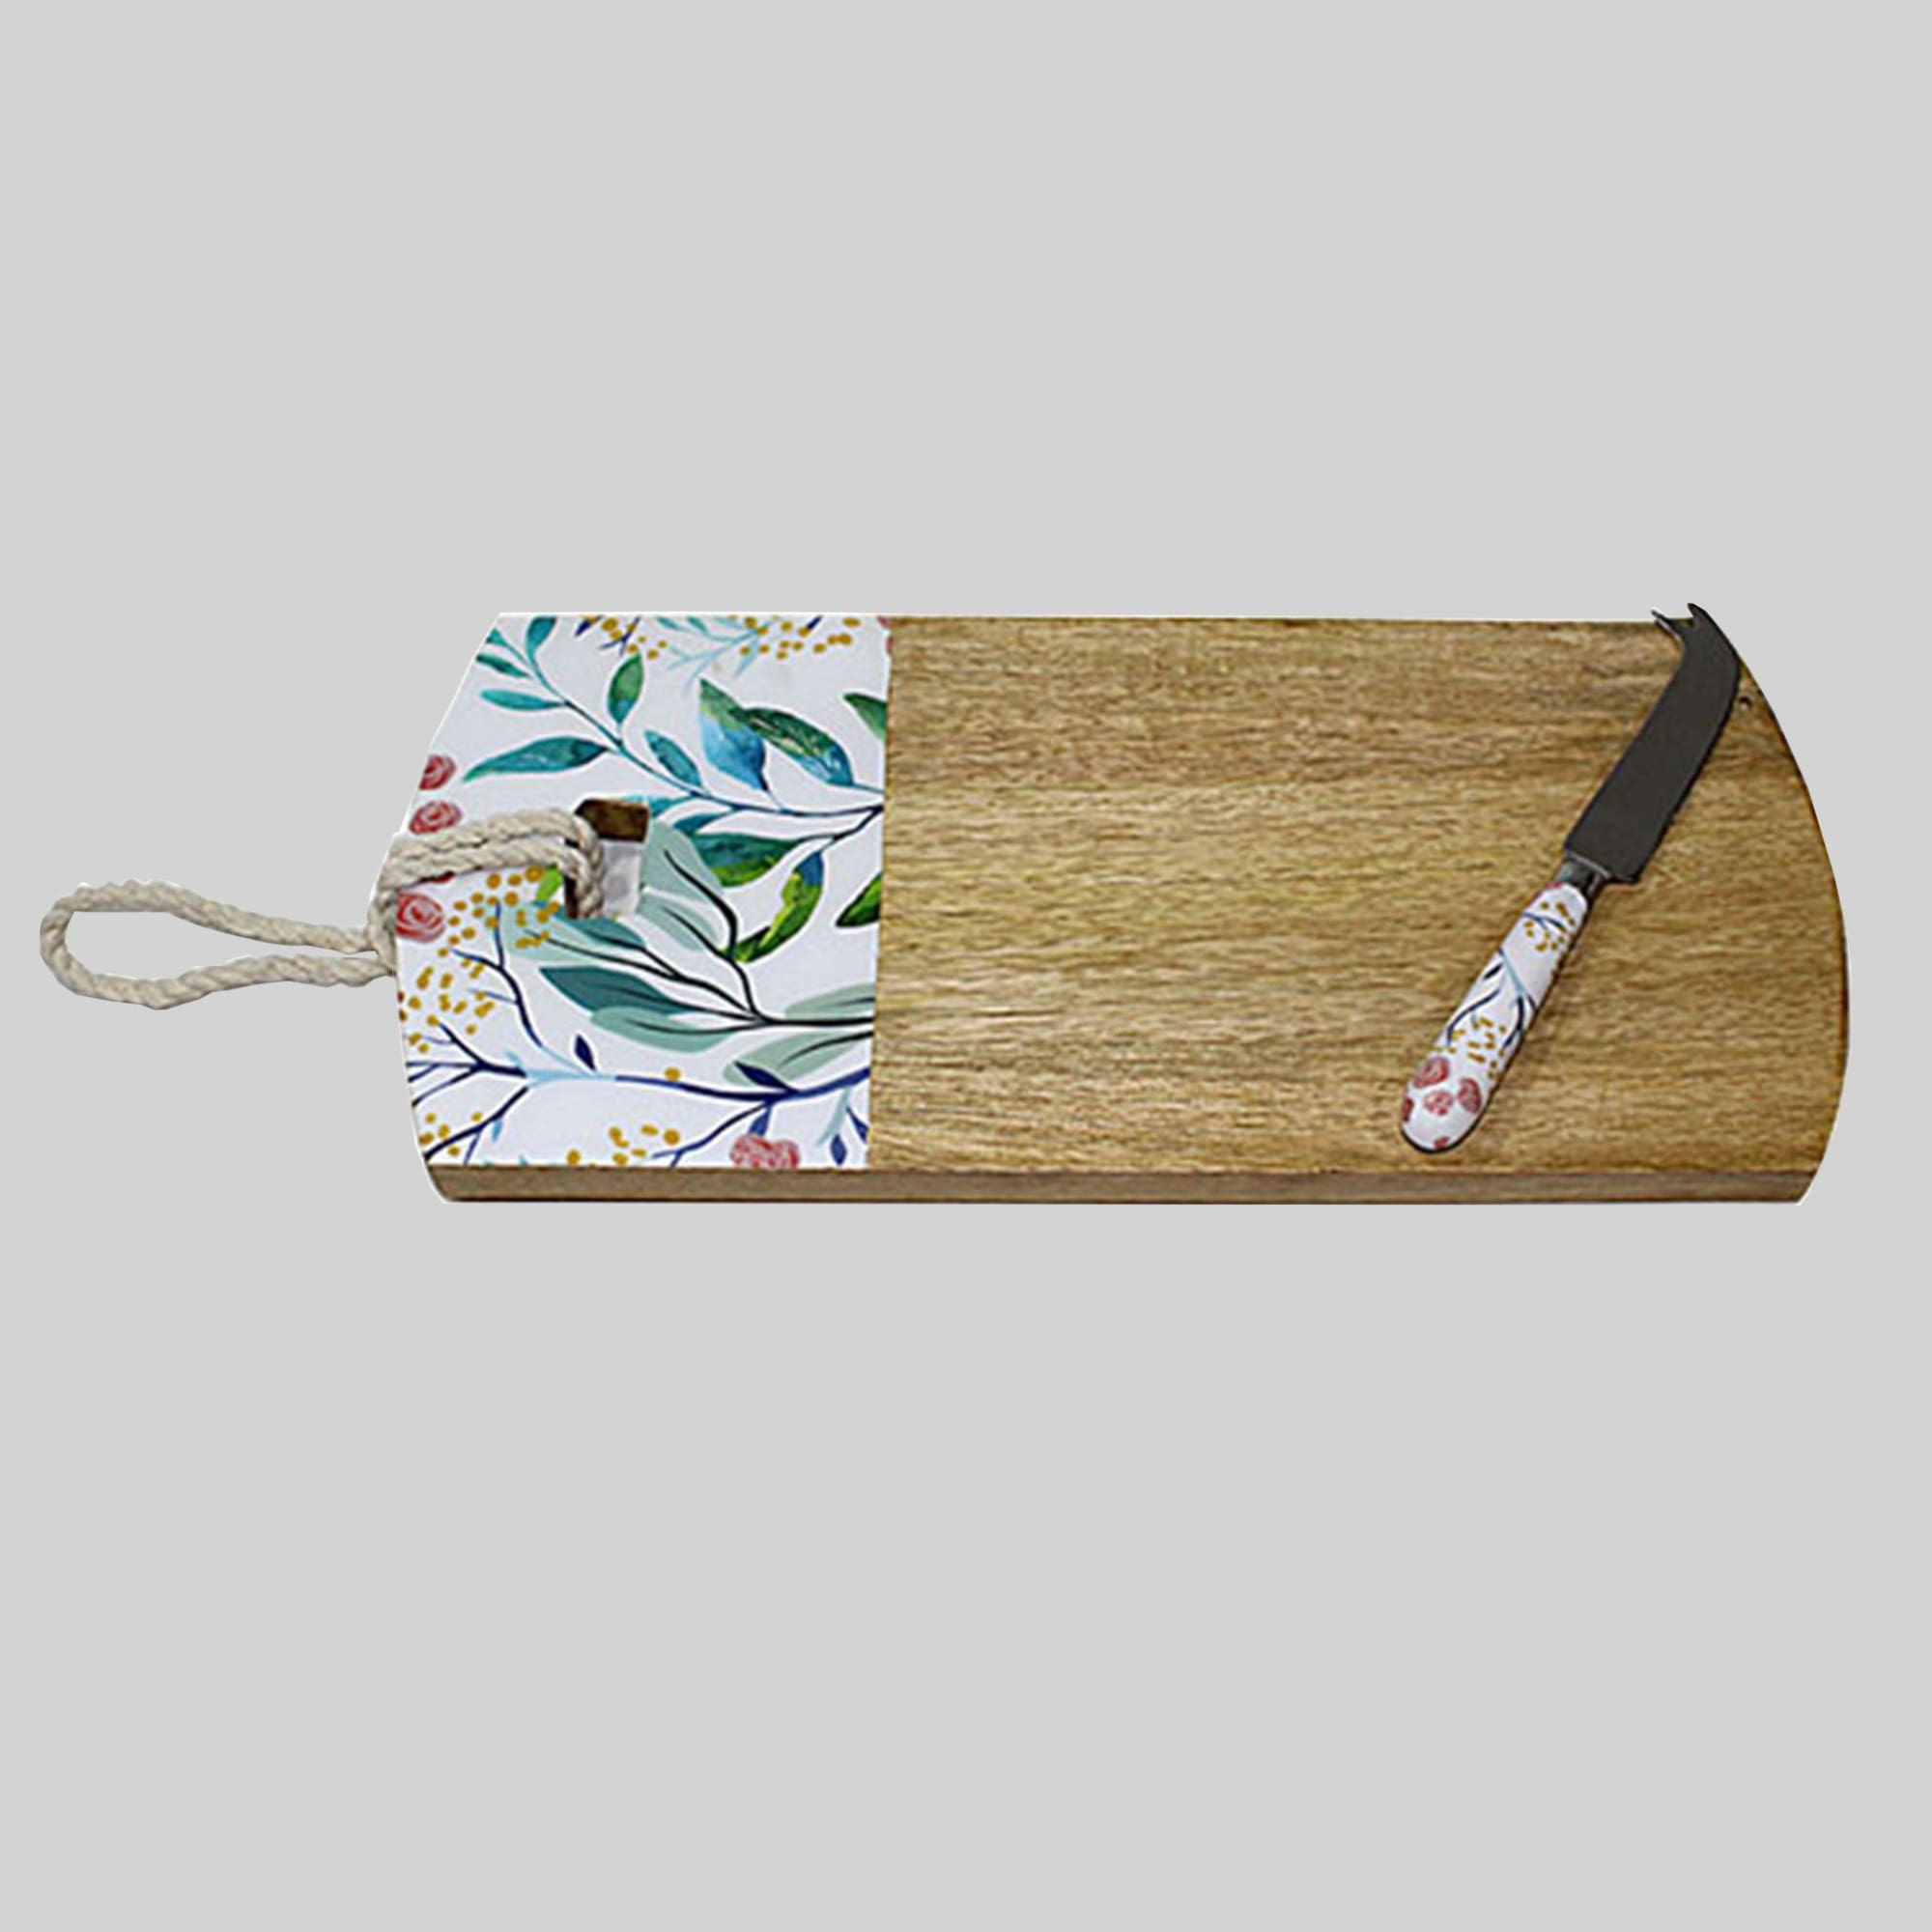 Spring Leaf Cheese Board & Knife - Lacquered